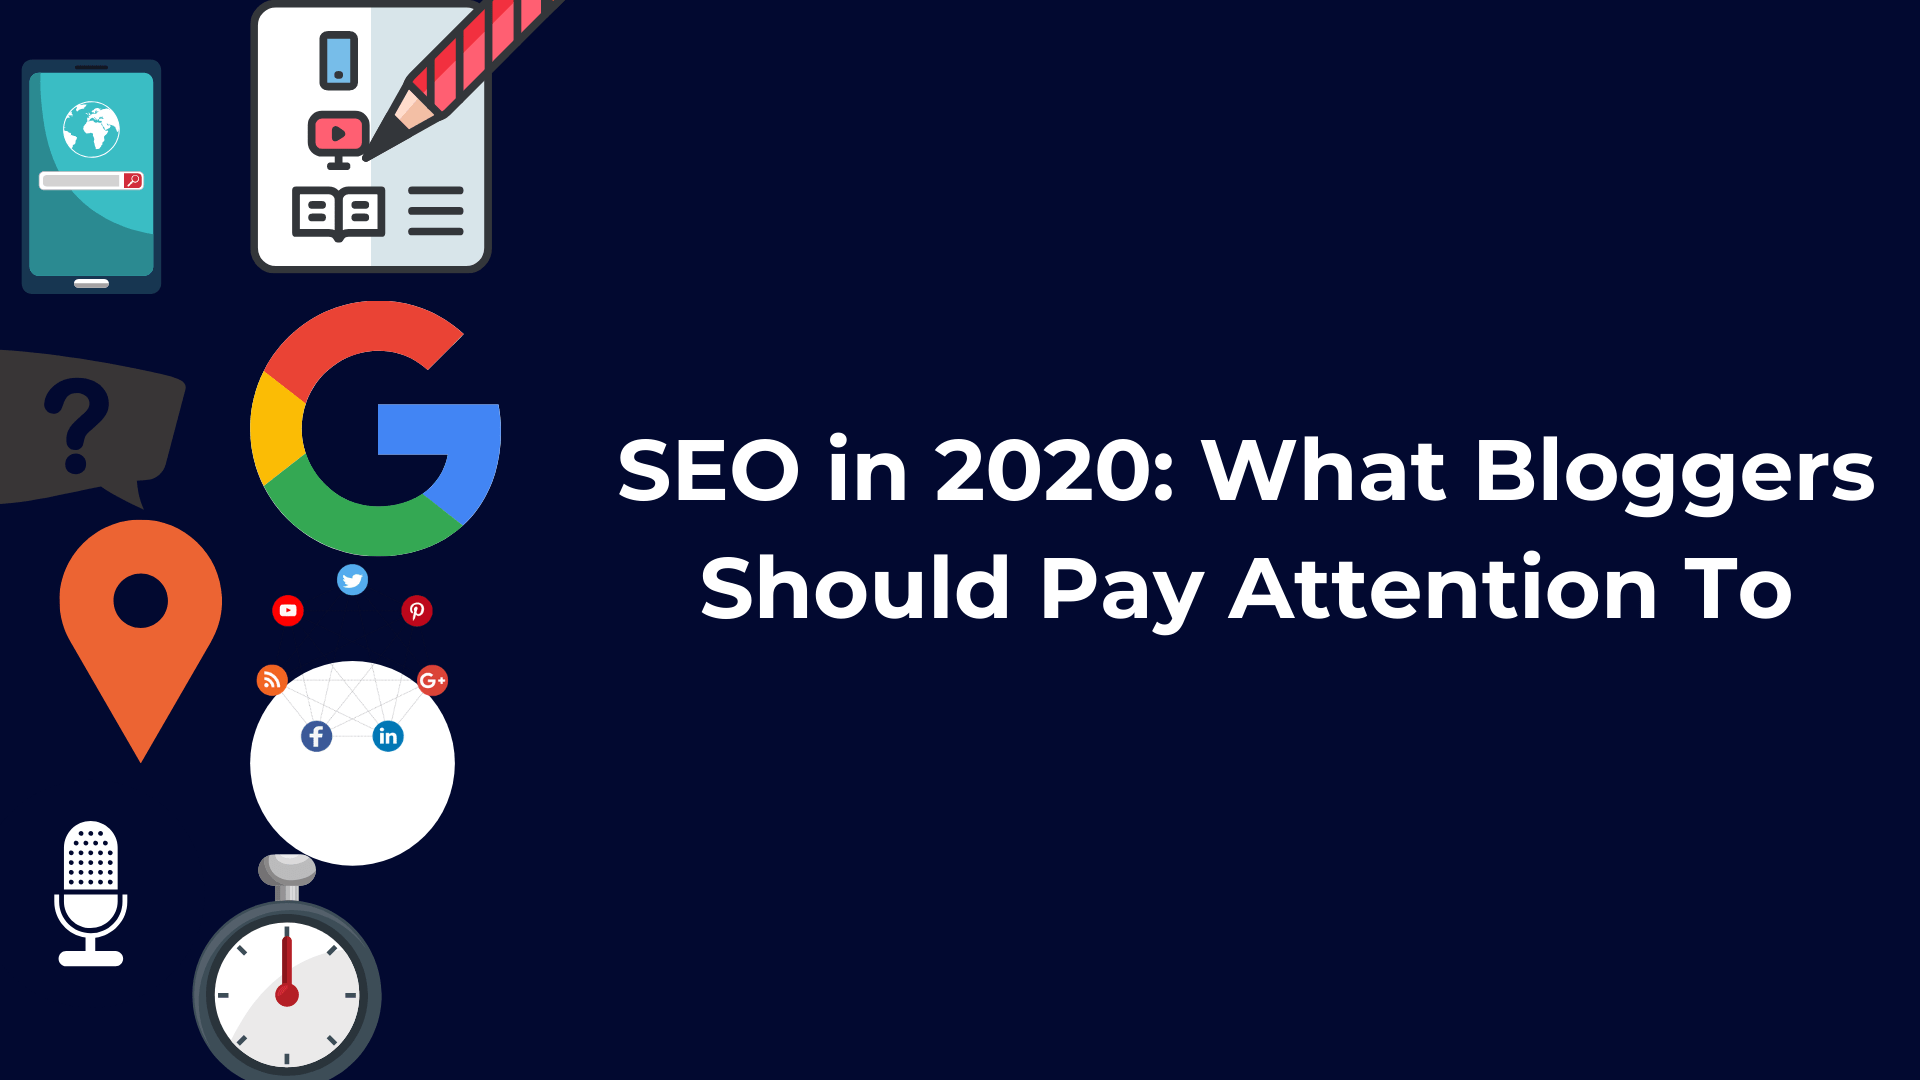 SEO-in-2020_-What-Bloggers-Should-Pay-Attention-To